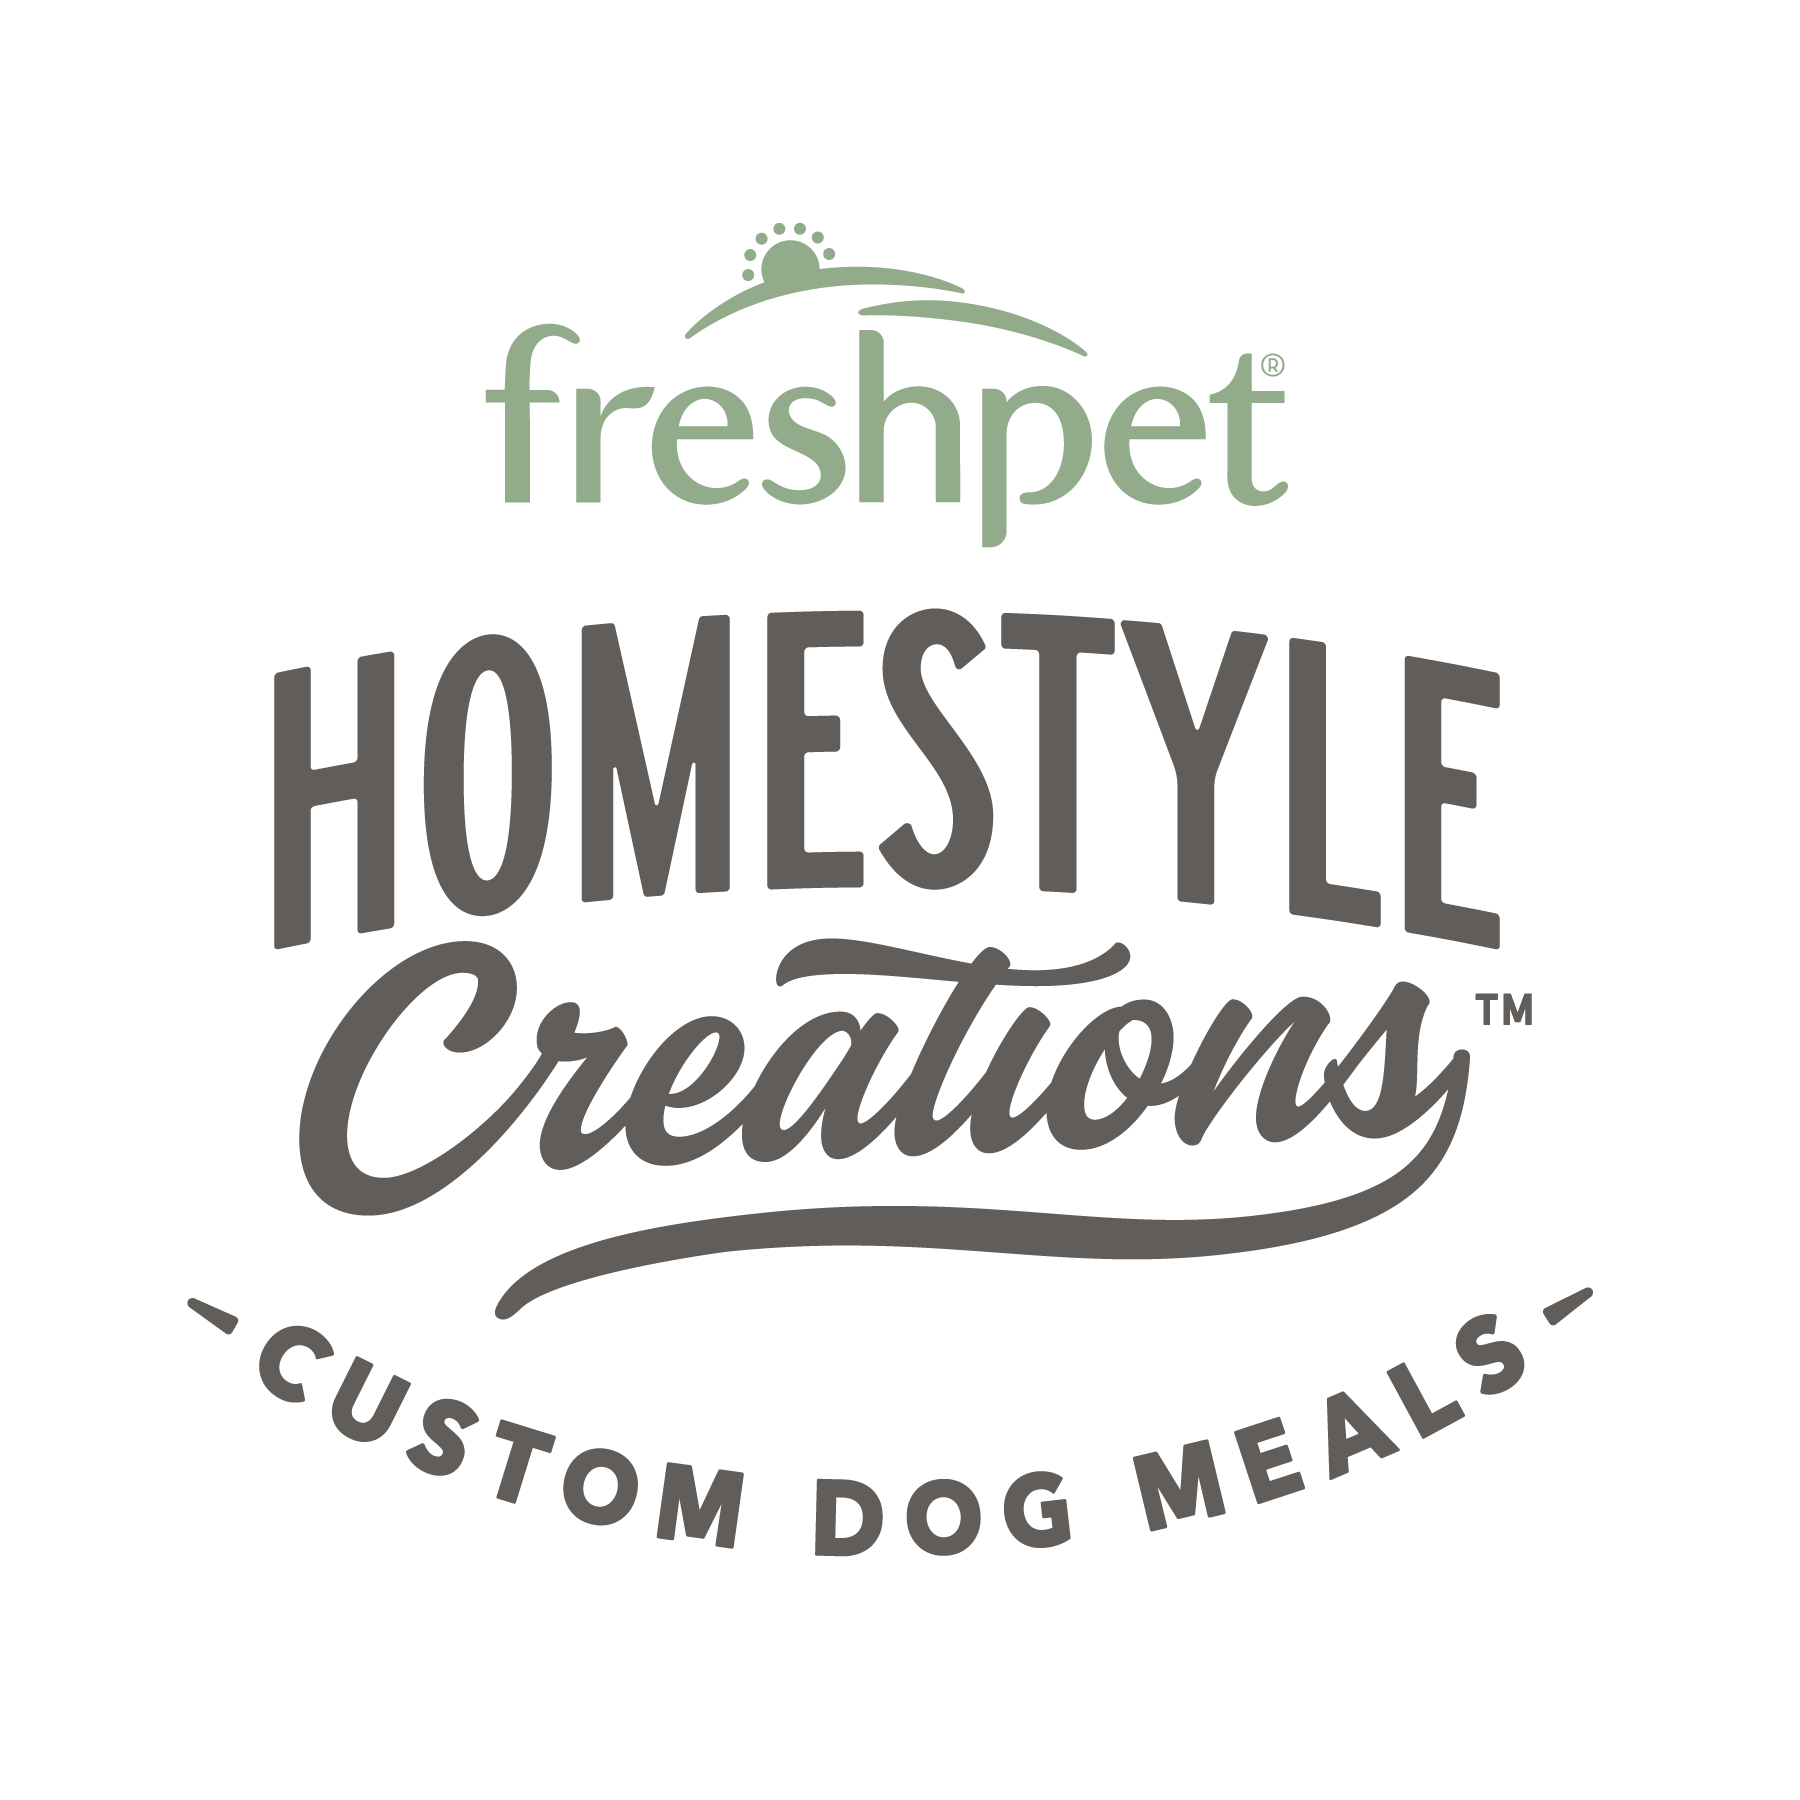 Freshpet® Homestyle Creations™ Custom Dog Food Meals.